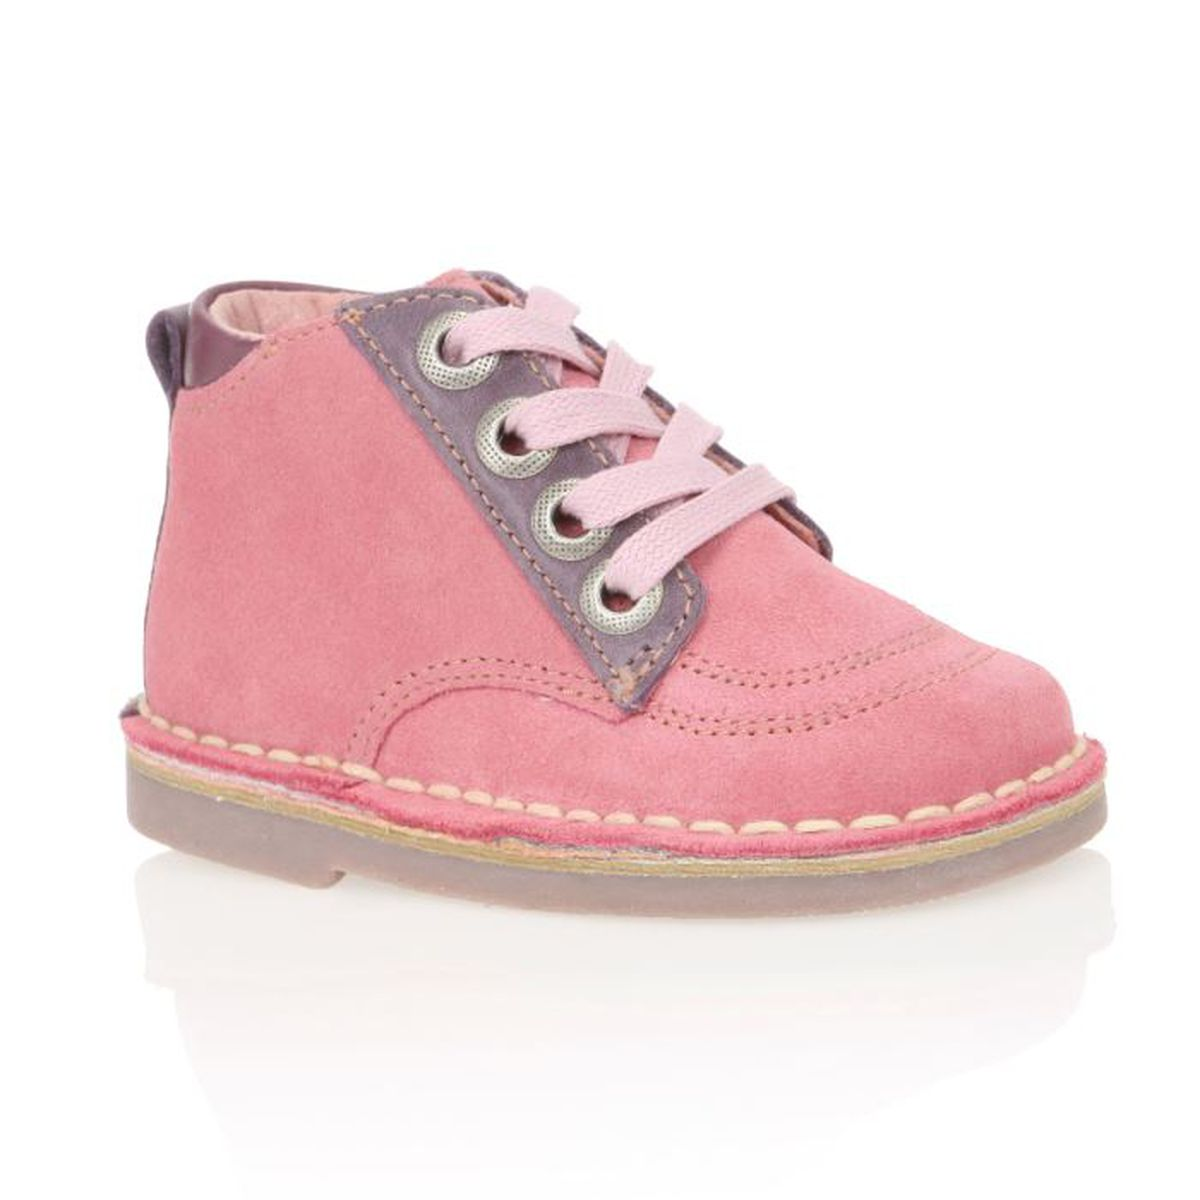 Kickers bebe fille pas cher - Chaussure bebe kickers pas cher ...